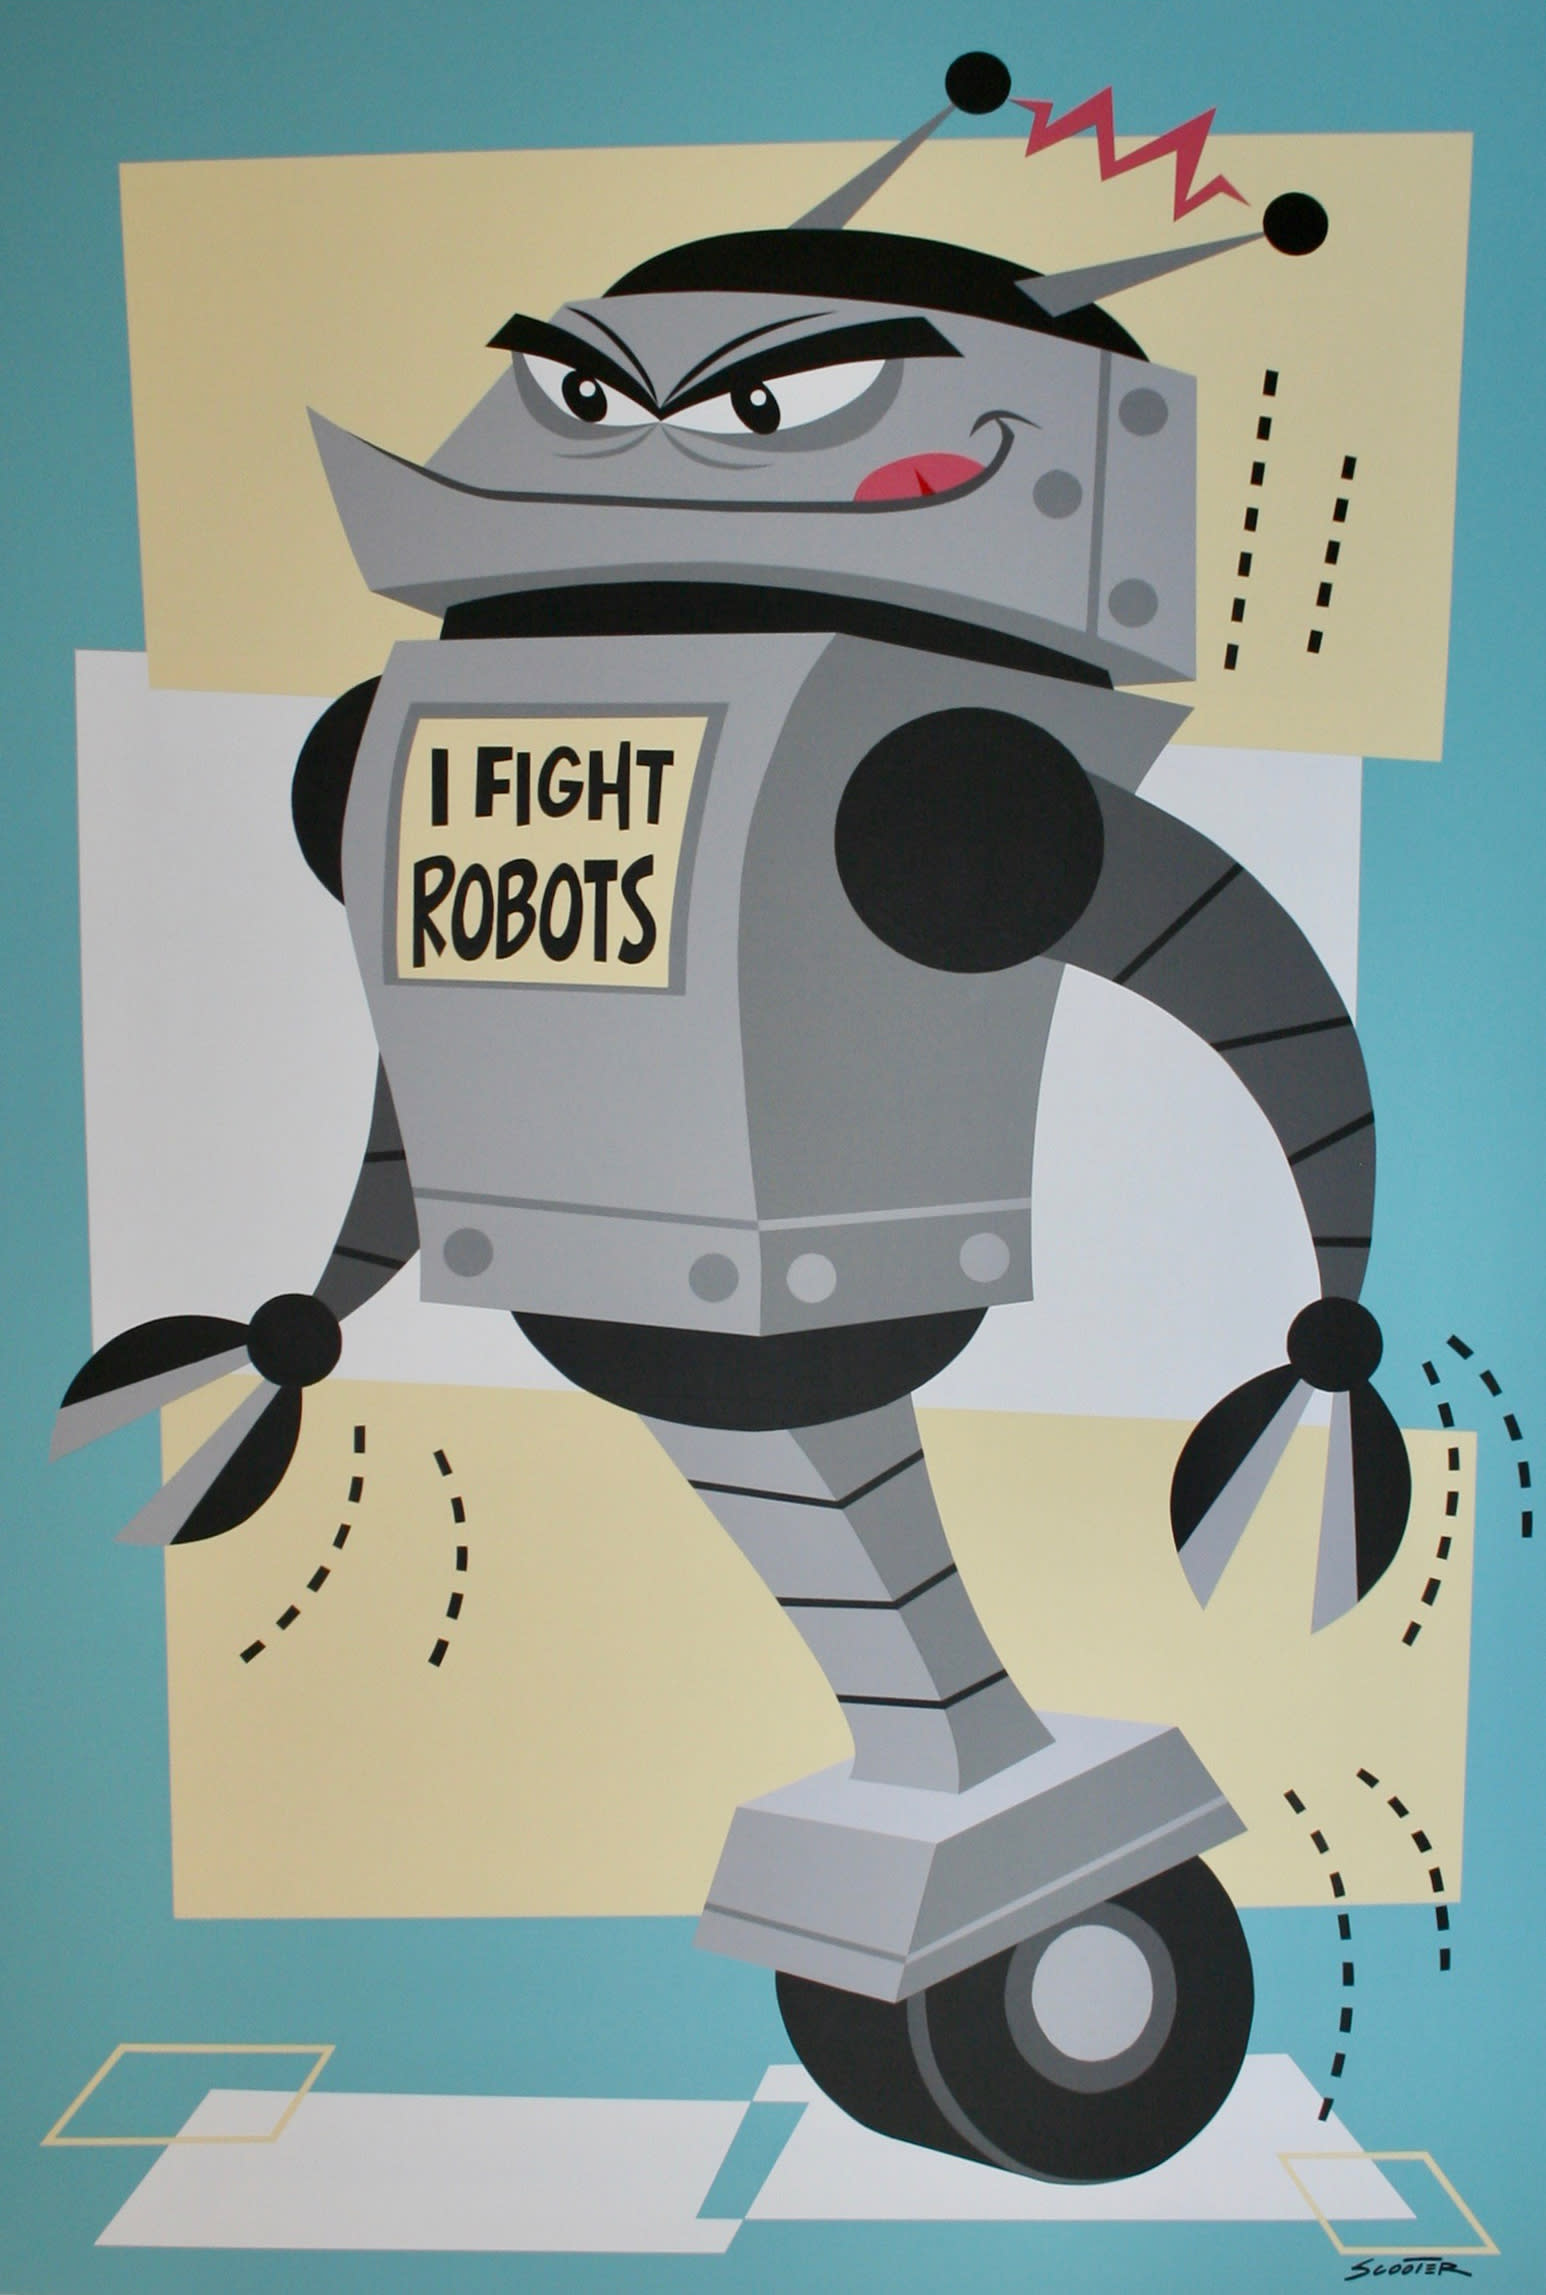 I fight robots 1 jpeg bgkuth